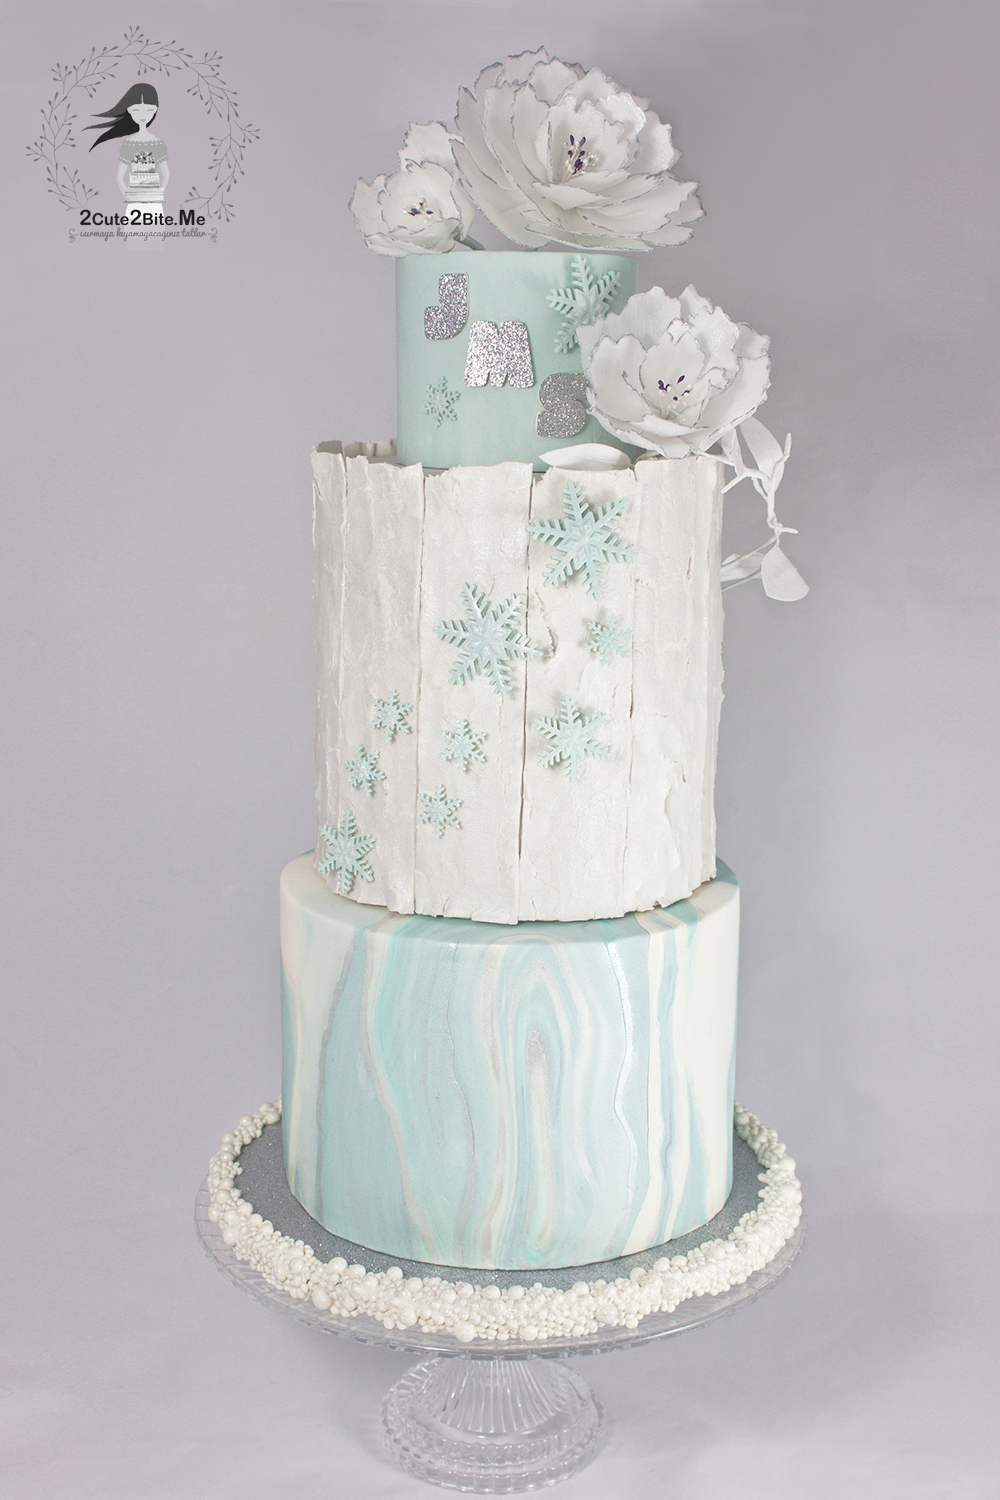 Icy blue Winter Wonderland Wedding Cake